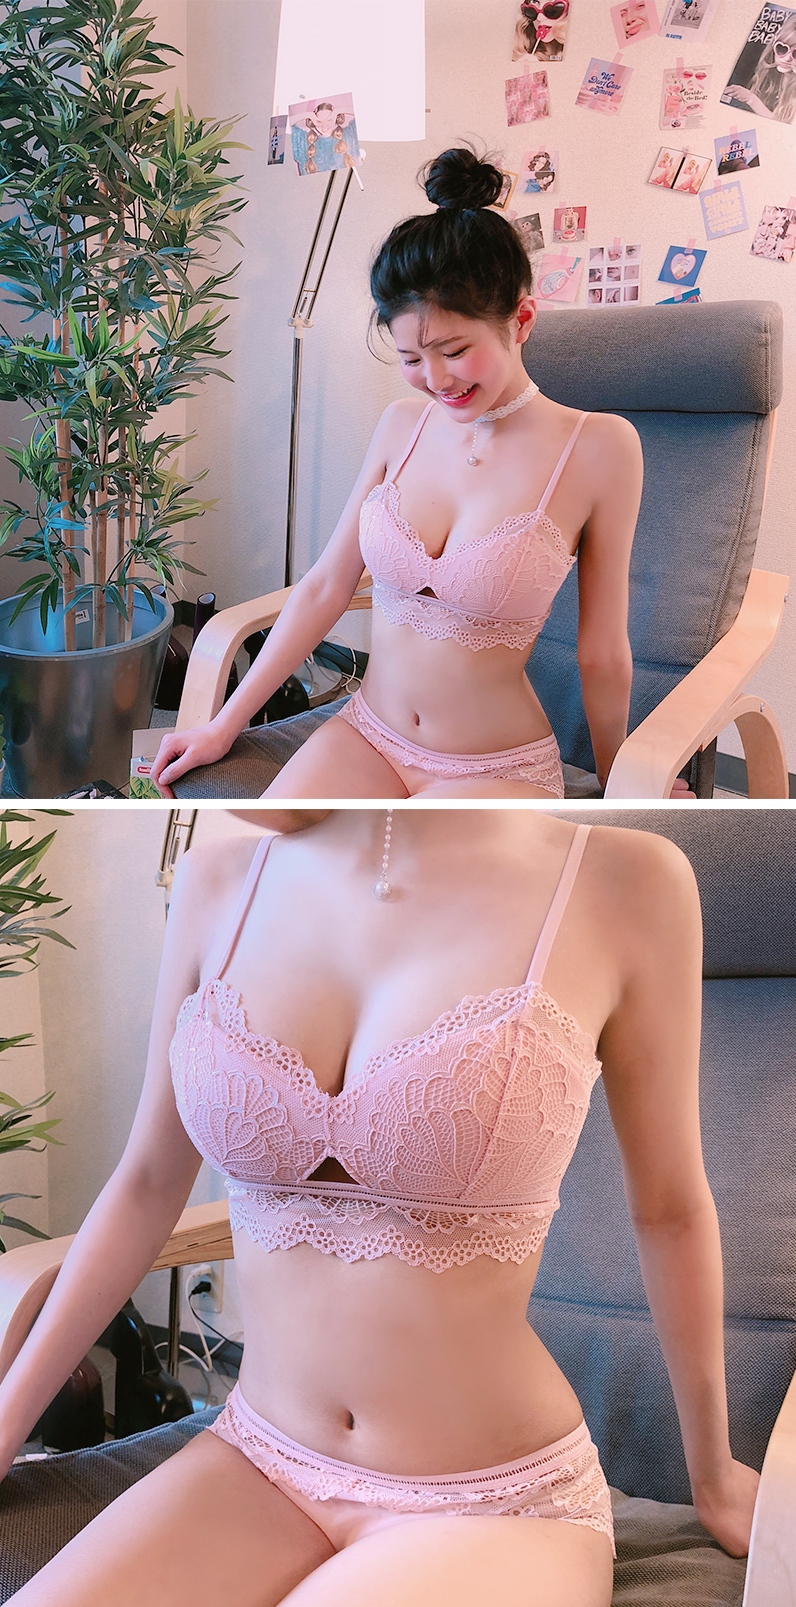 //cdn.nhanh.vn/cdn/store/29770/psCT/20180715/8173396/CHUU_Sweet_Day_Bra_And_Pantie_Set_(180310_02_(22)).jpg